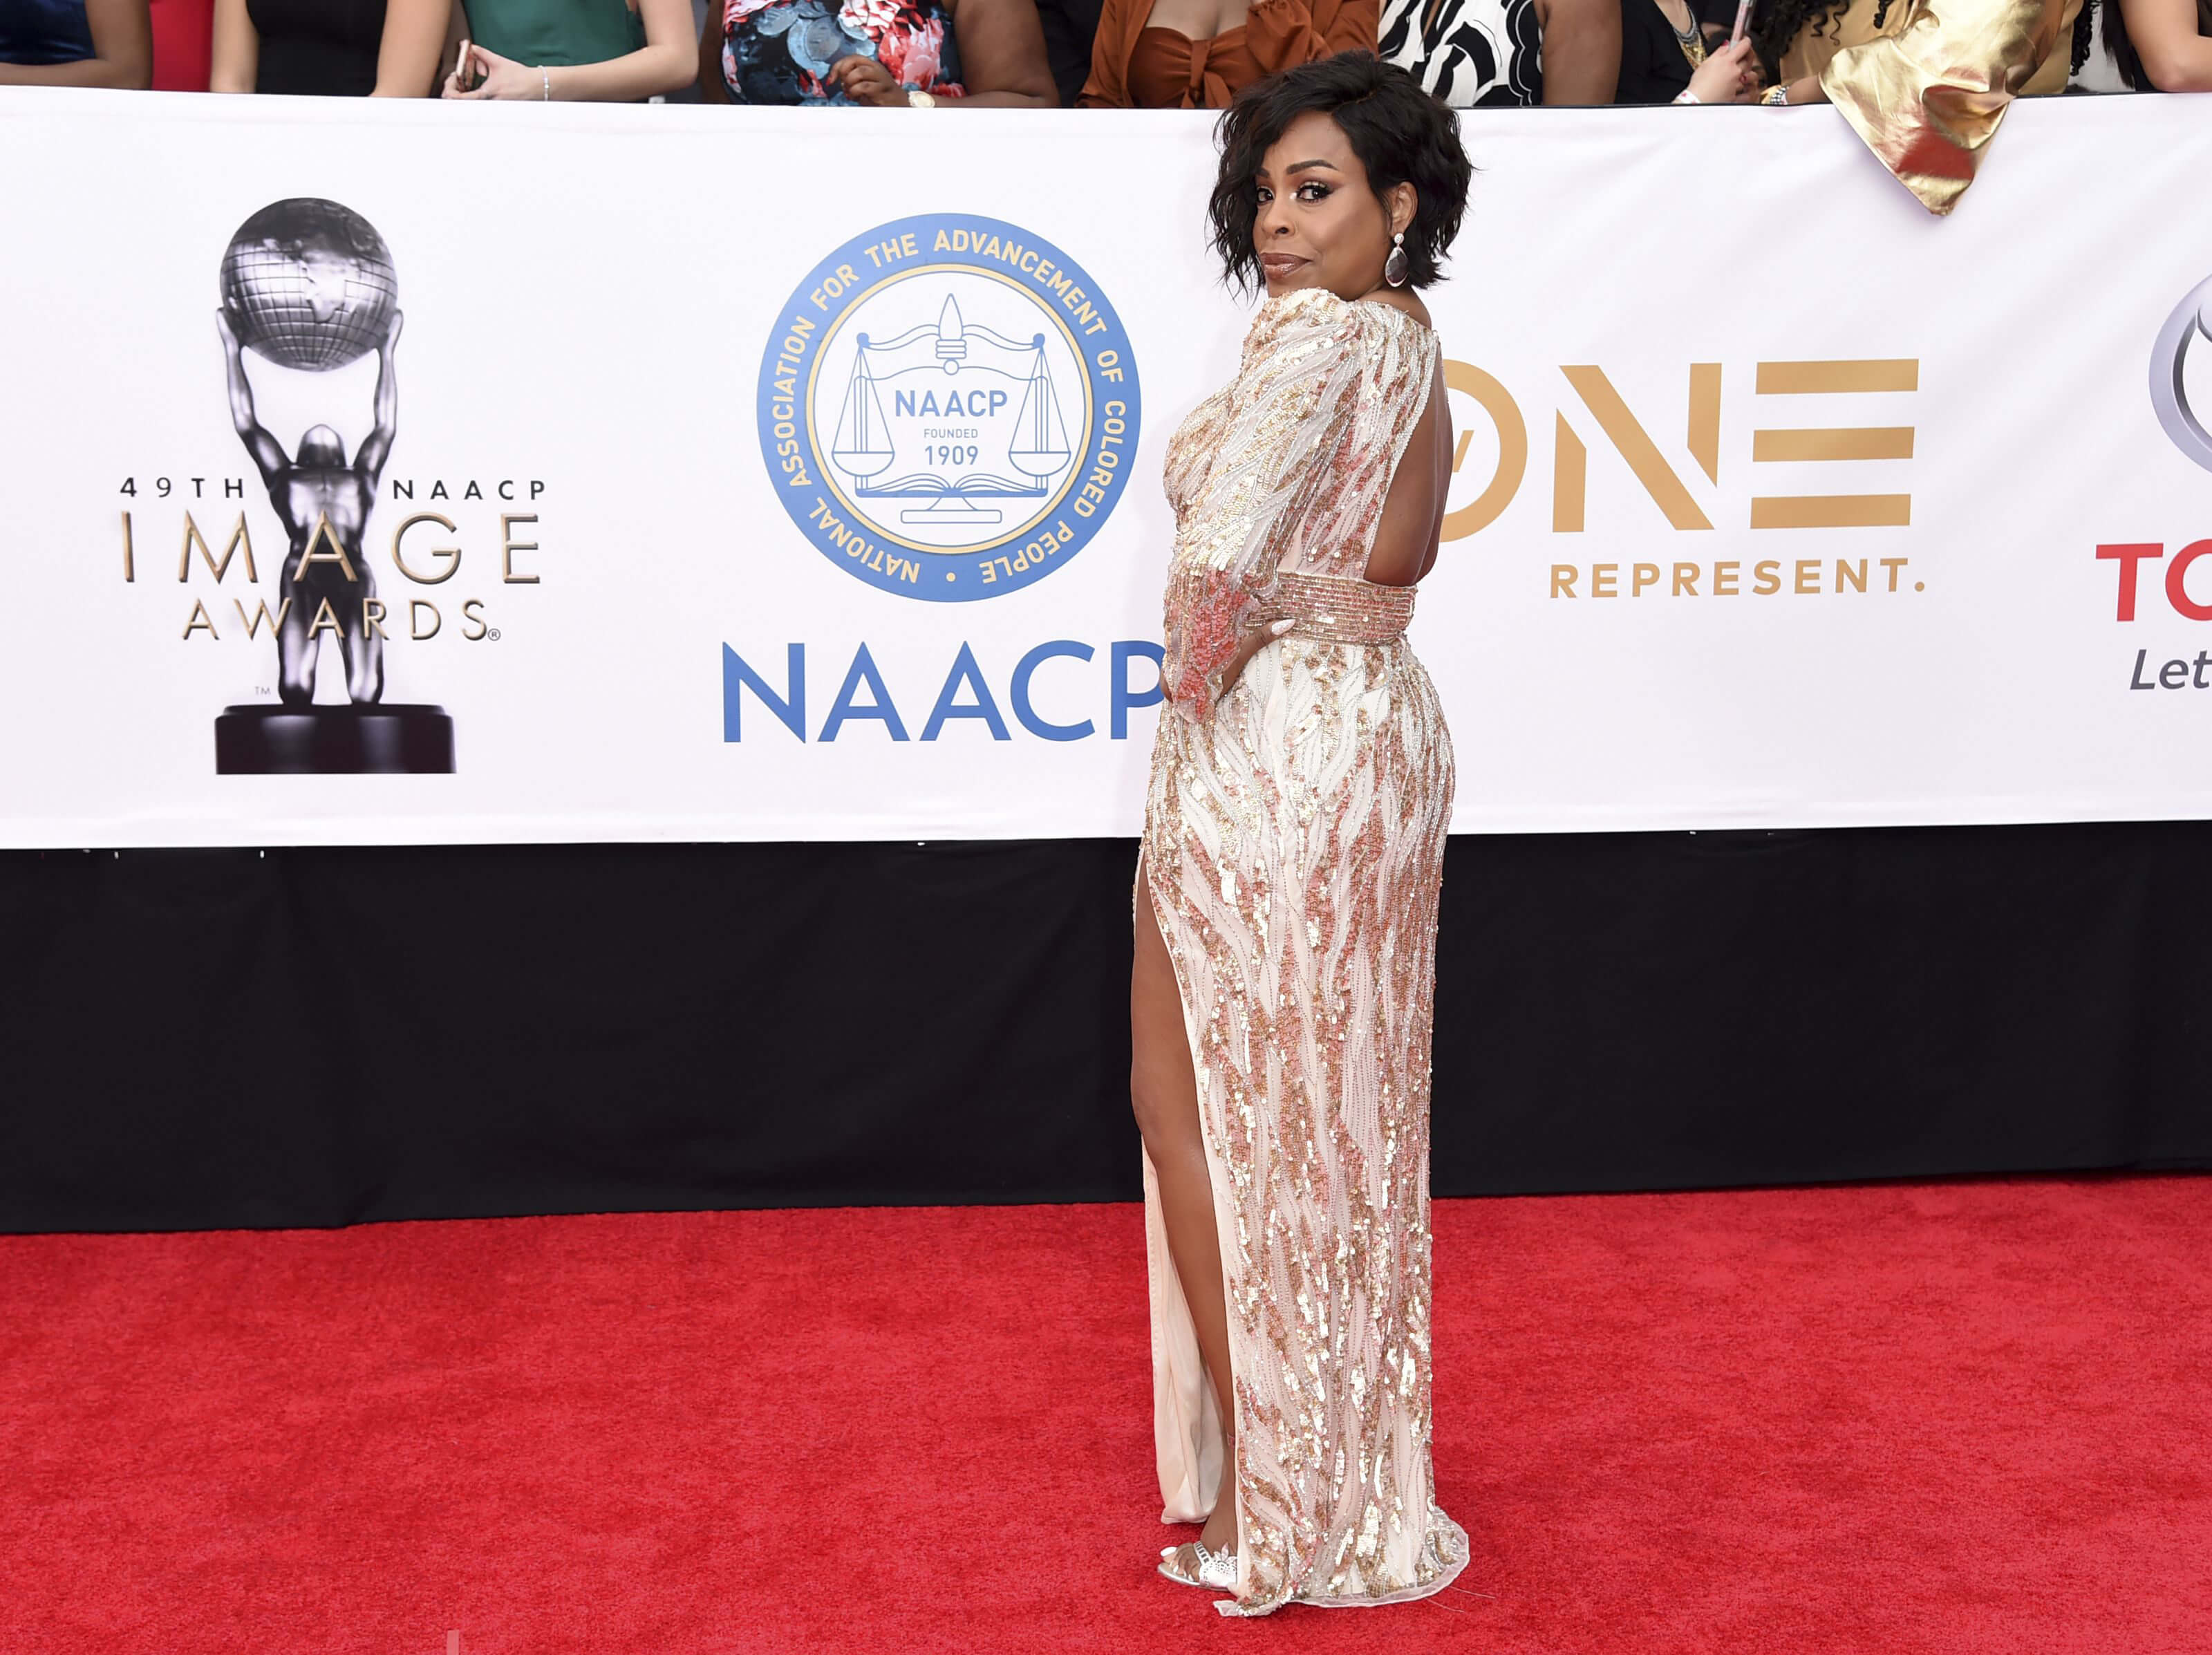 52 Hot Pictures Of Niecy Nash Which Will Make You Drool For Her - Page 3 of 6 - Best Hottie